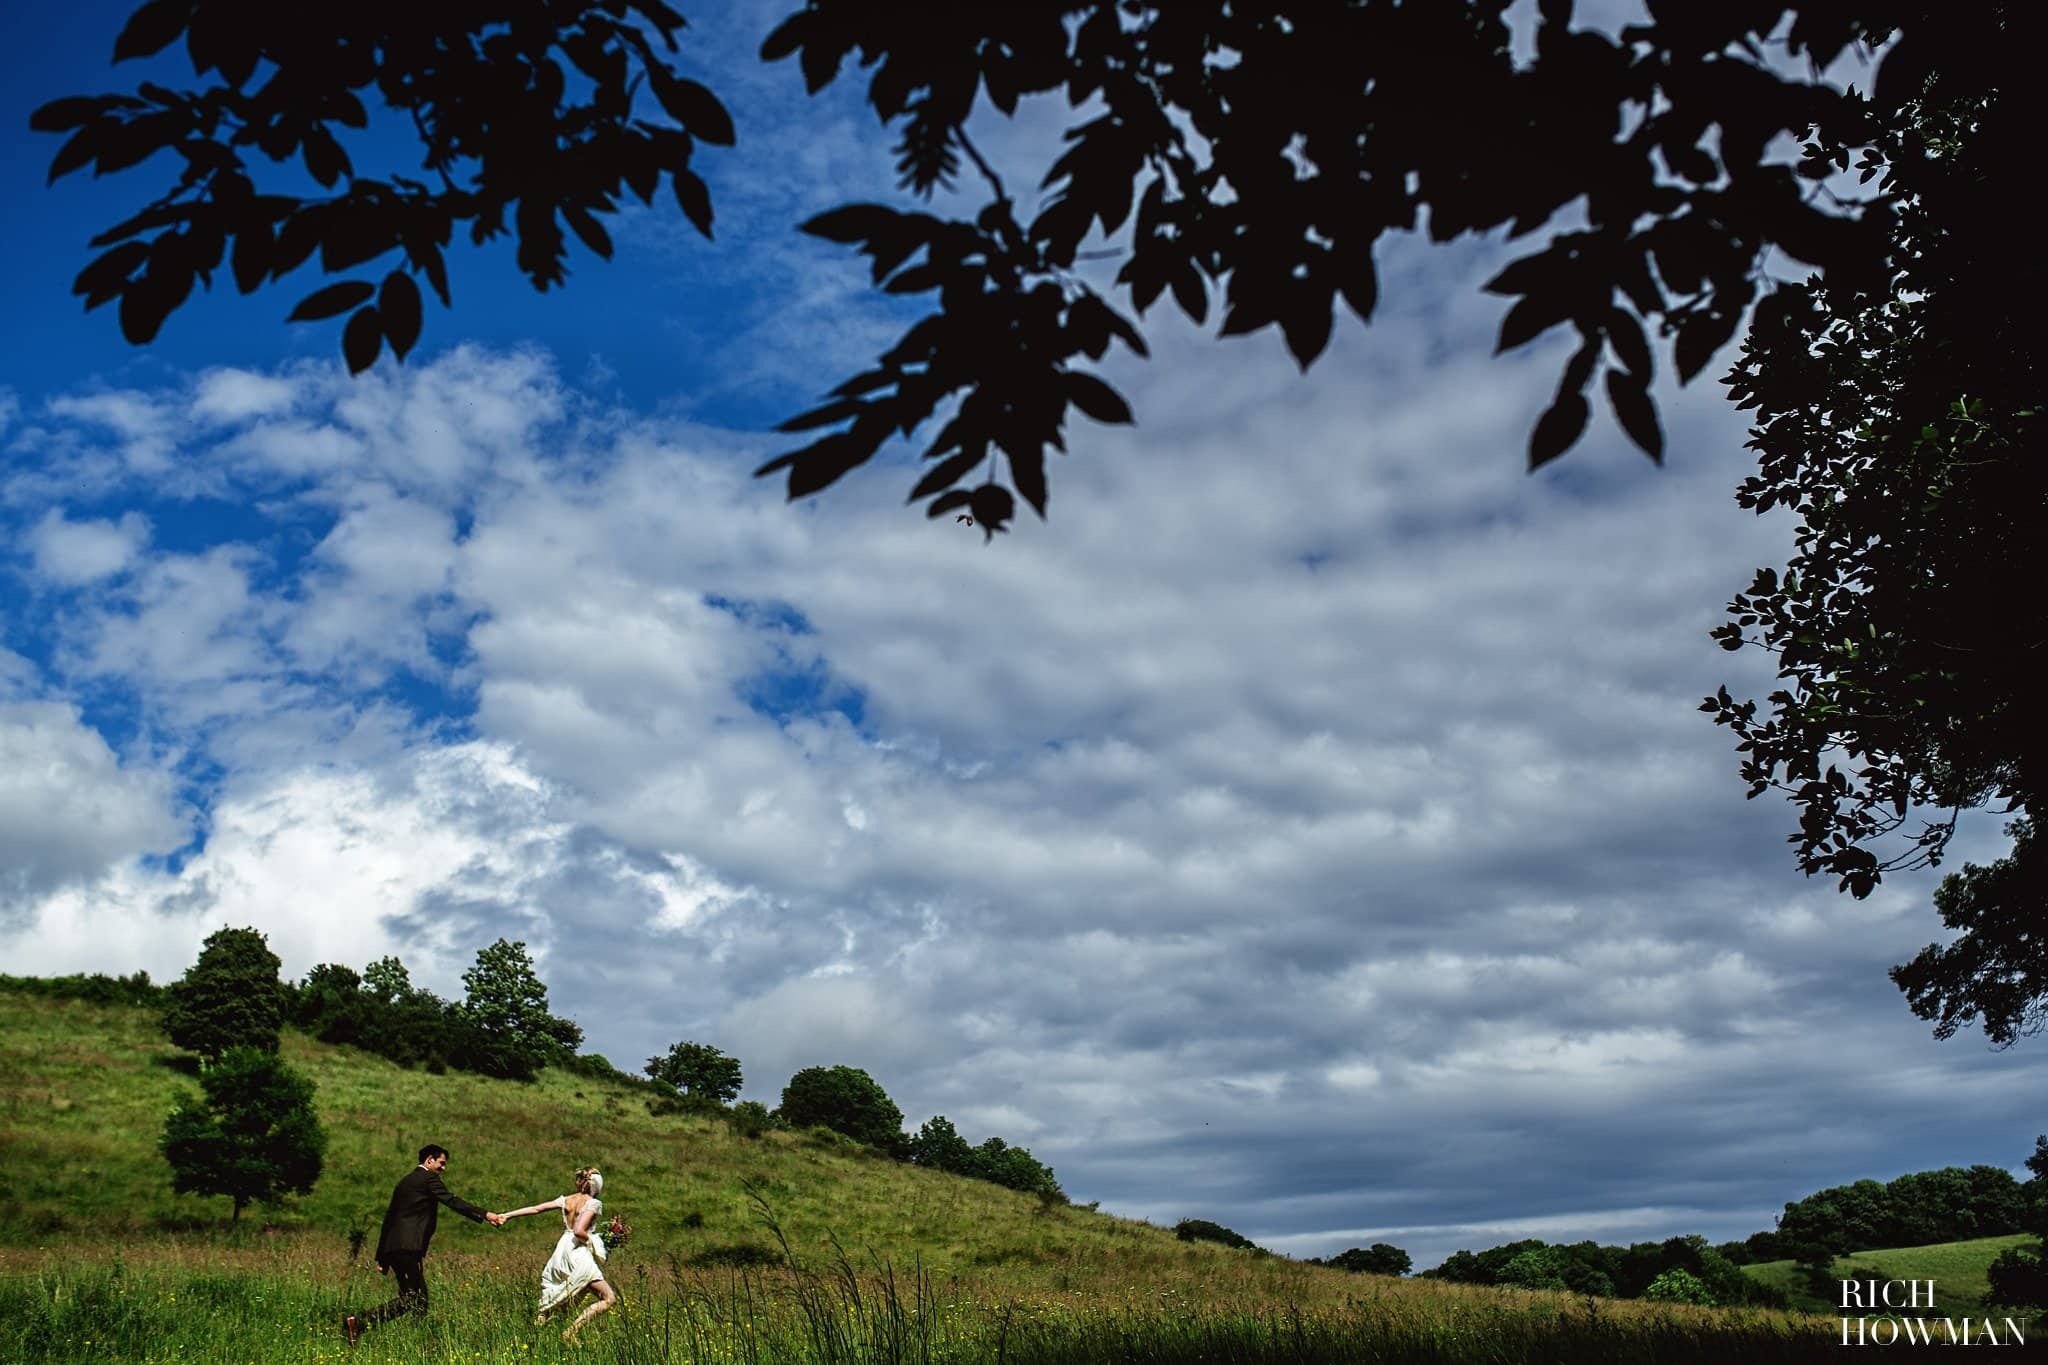 Wedding Photographer Folly Farm Bristol - Bride pulling her husband through the fields under a blue sky